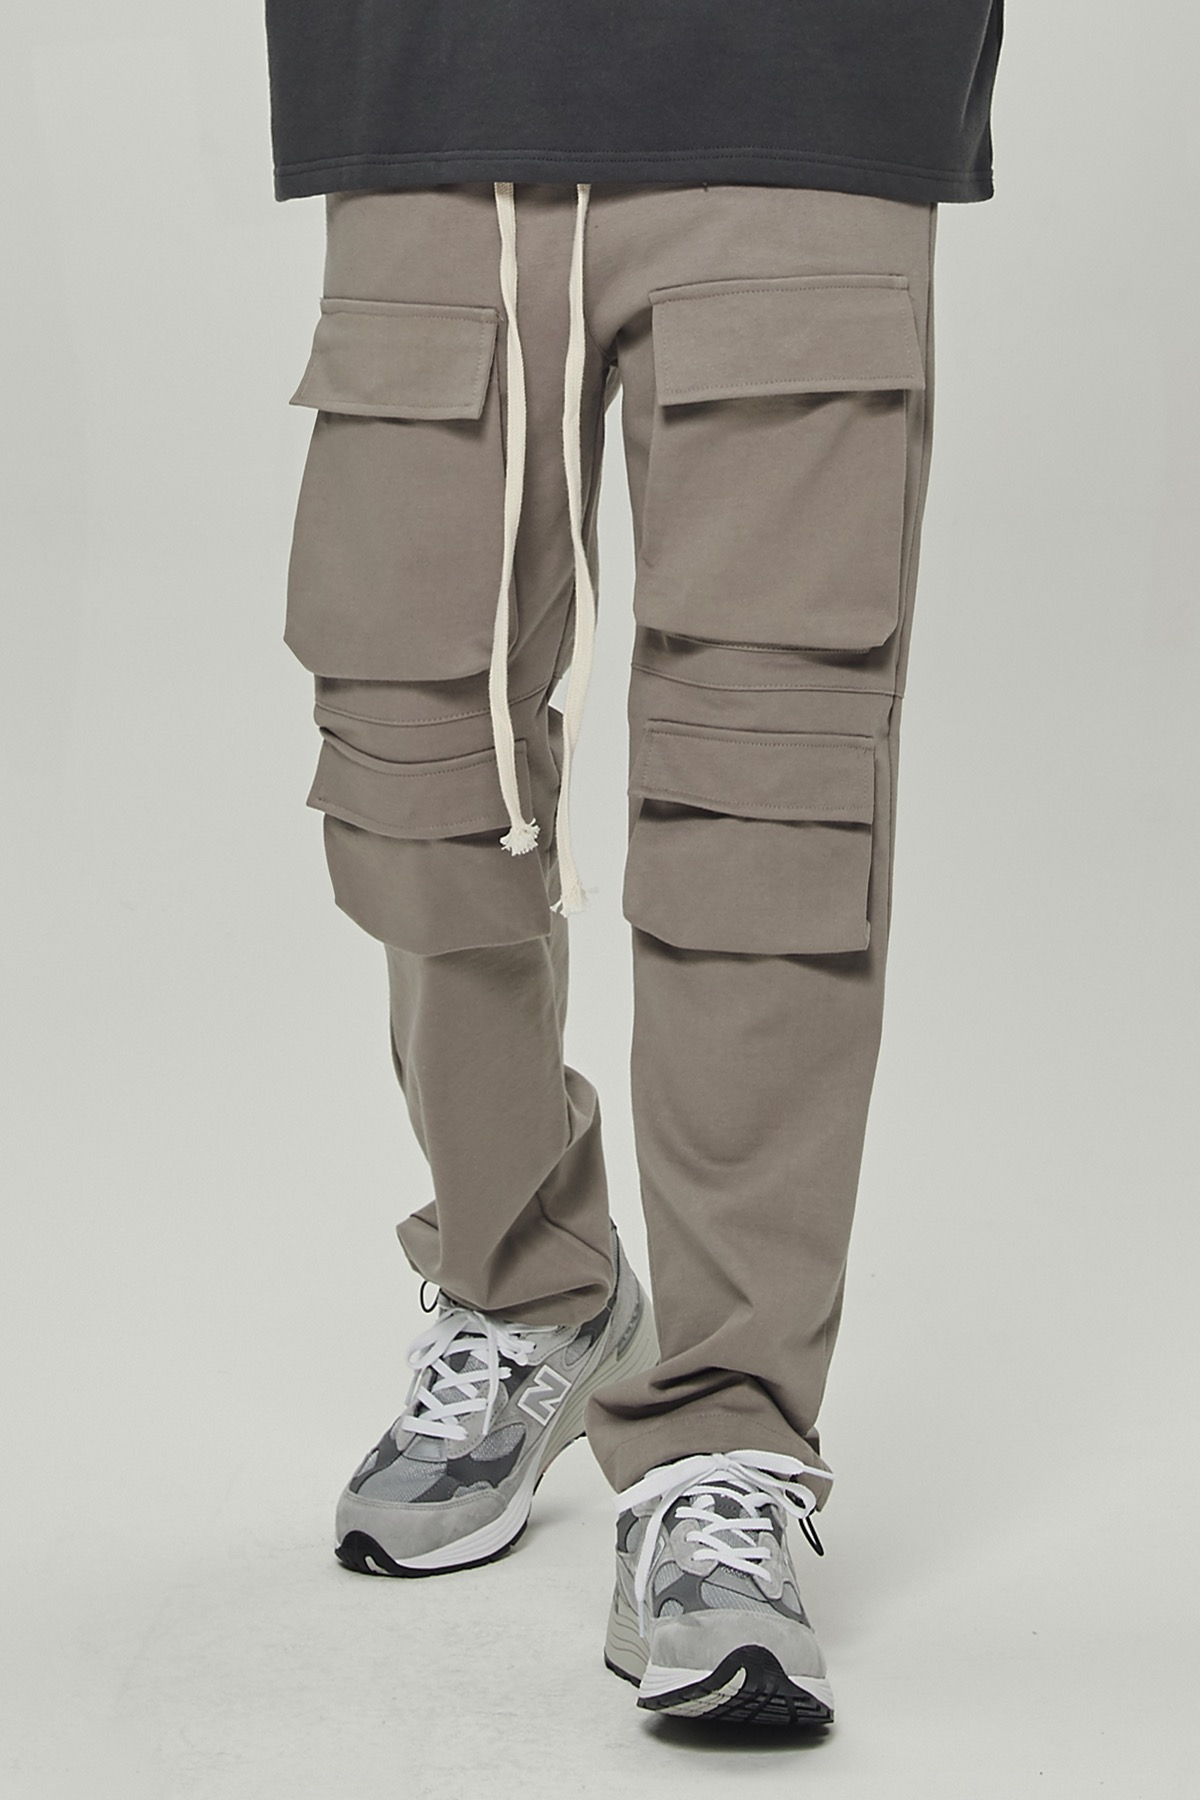 TAN MULTI POCKET CARGO STRING PANTS